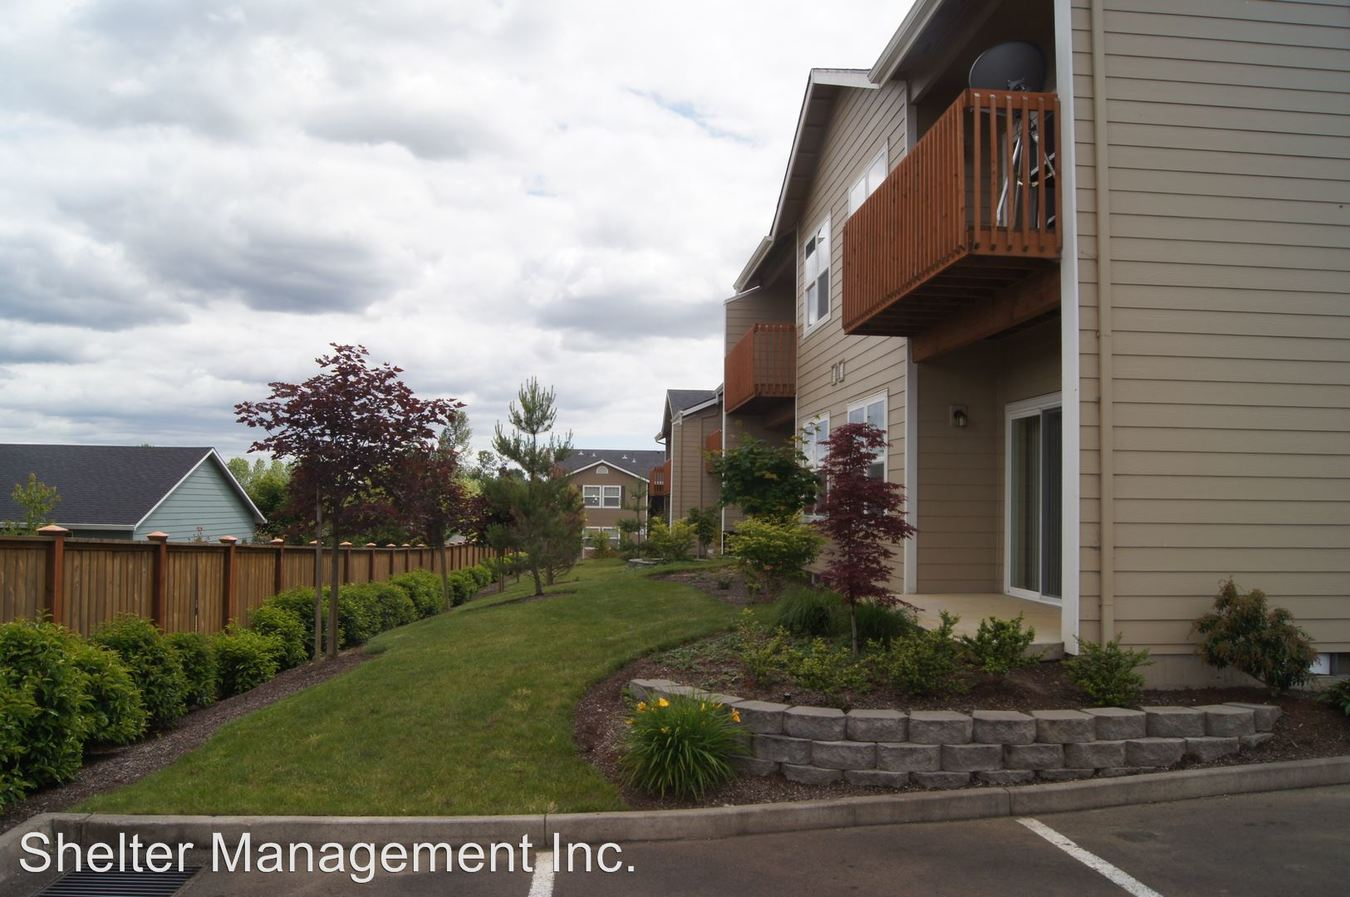 2 Bedrooms 1 Bathroom Apartment for rent at Valley Pointe Apartments 2850 Sw 2nd in Mcminnville, OR